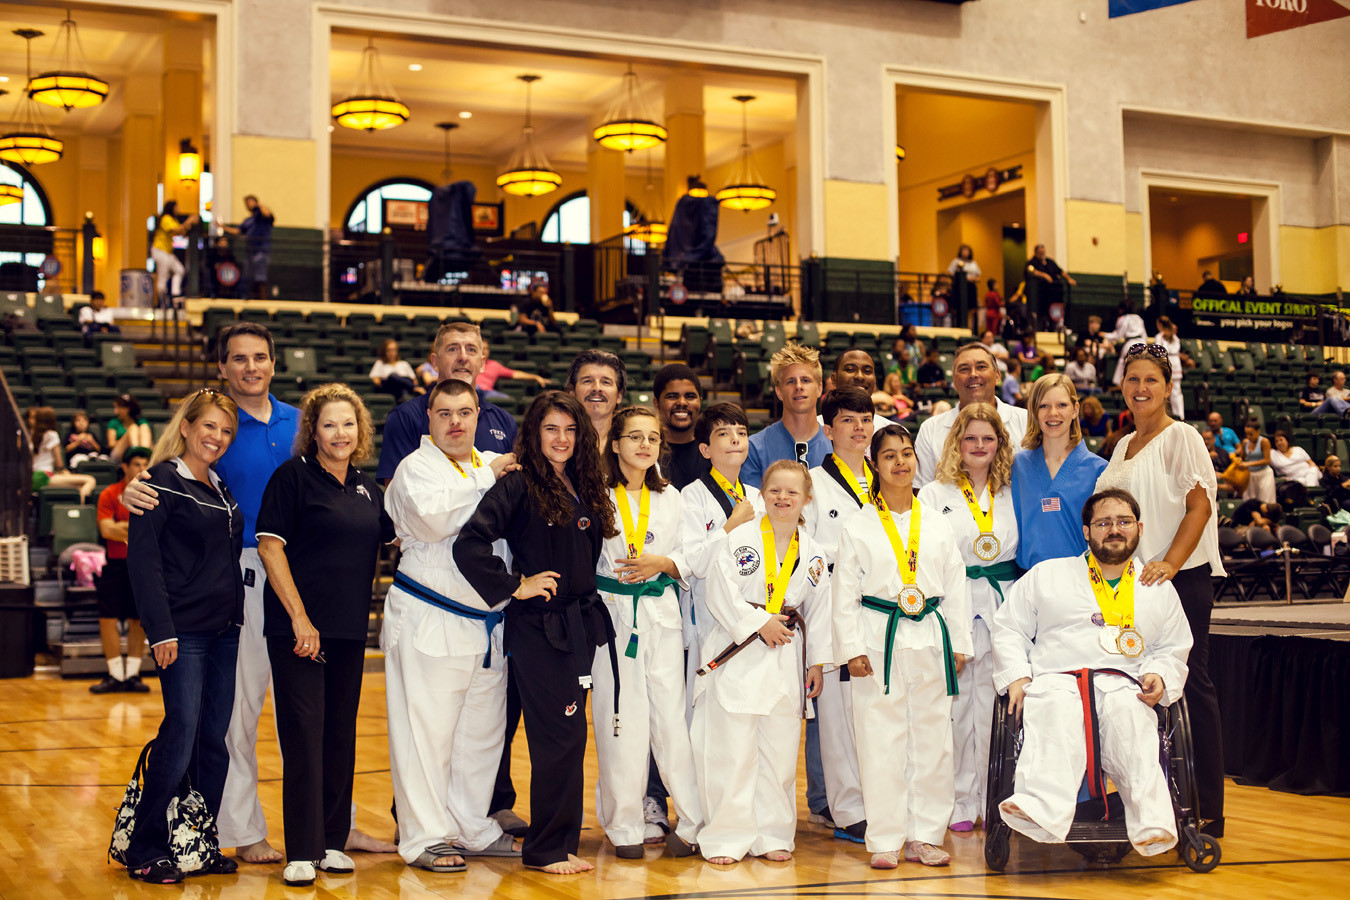 international-martial-arts-festival-nationals-69